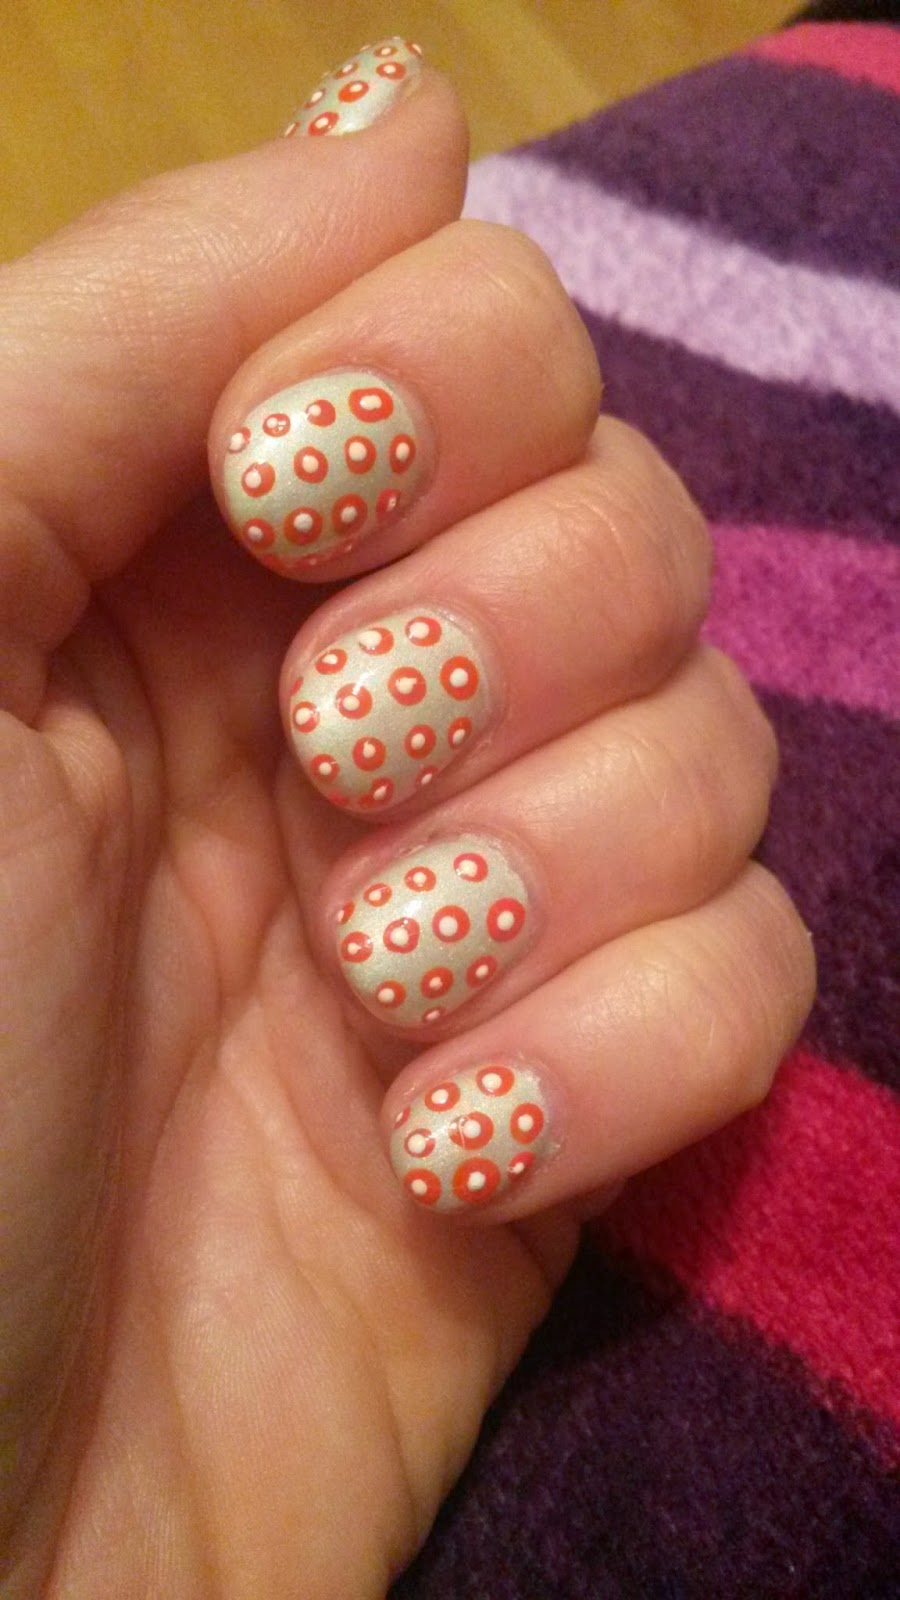 My world is pink: Nail Art: Mach mal einen Punkt!